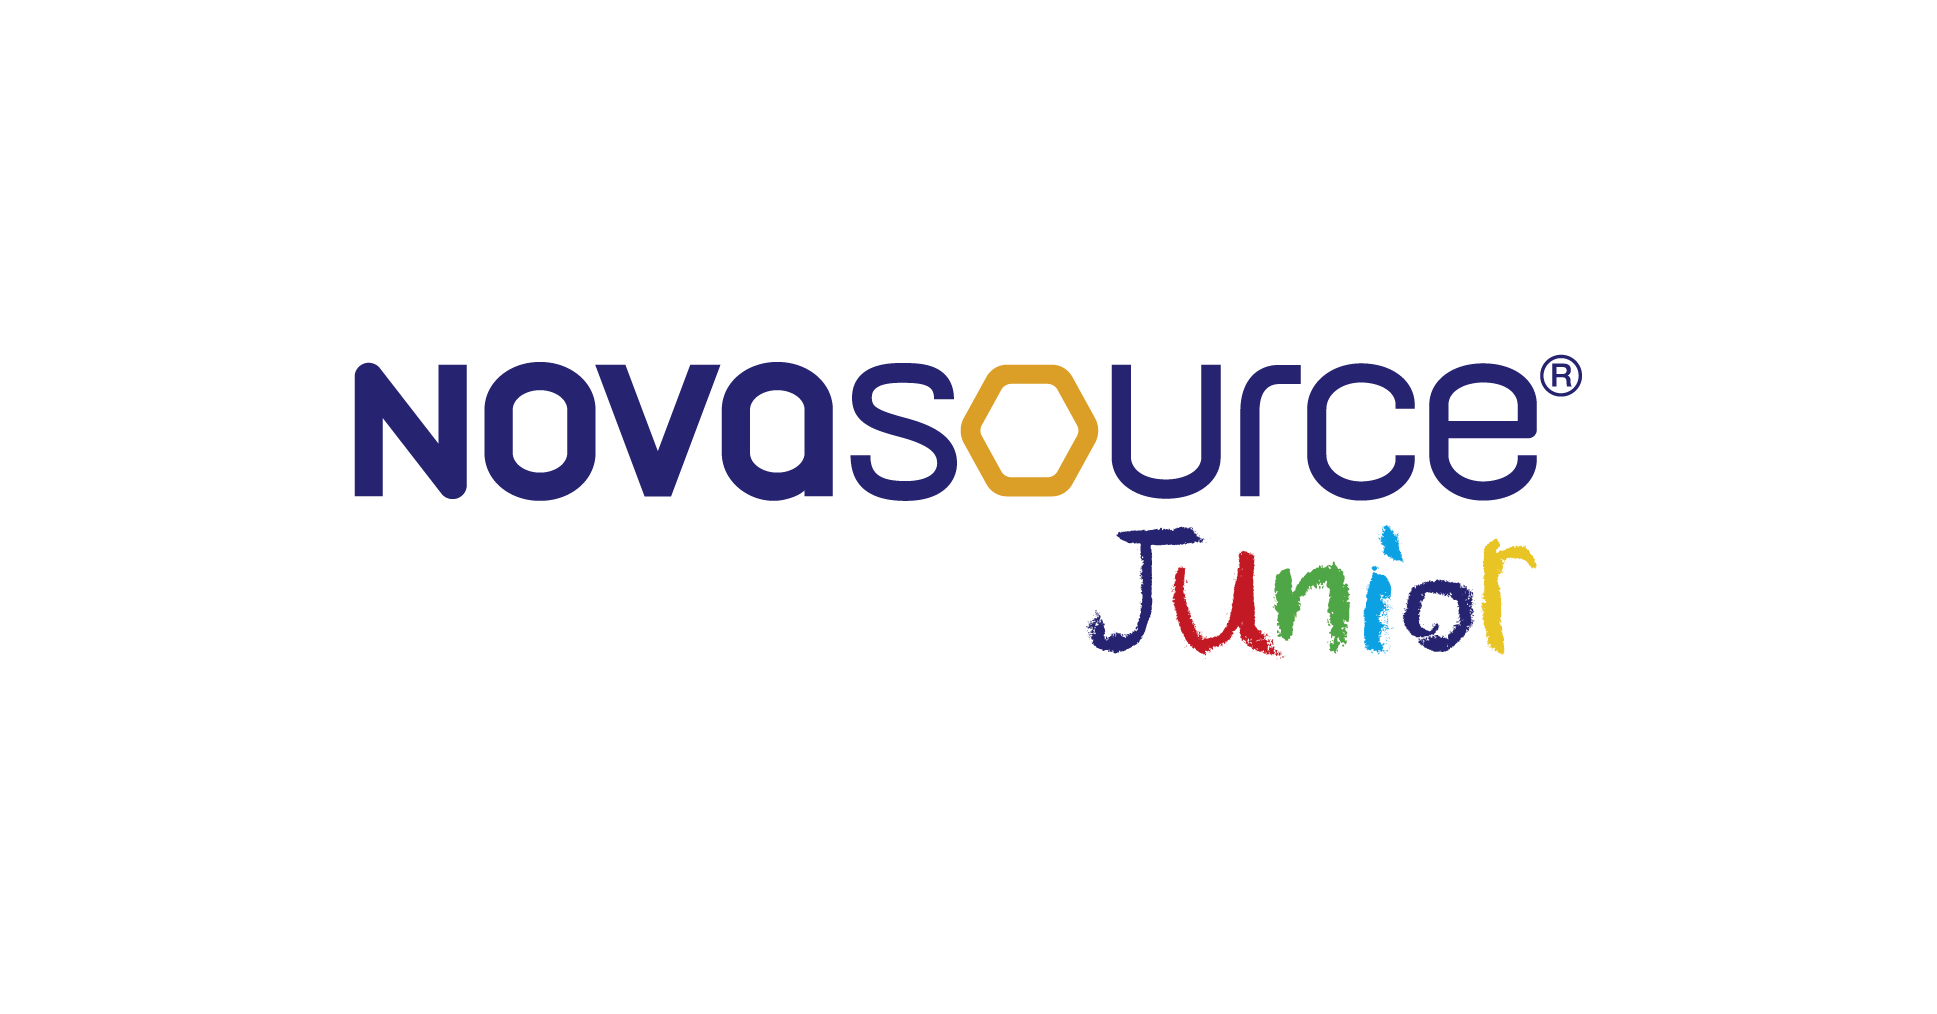 Novasource Junior